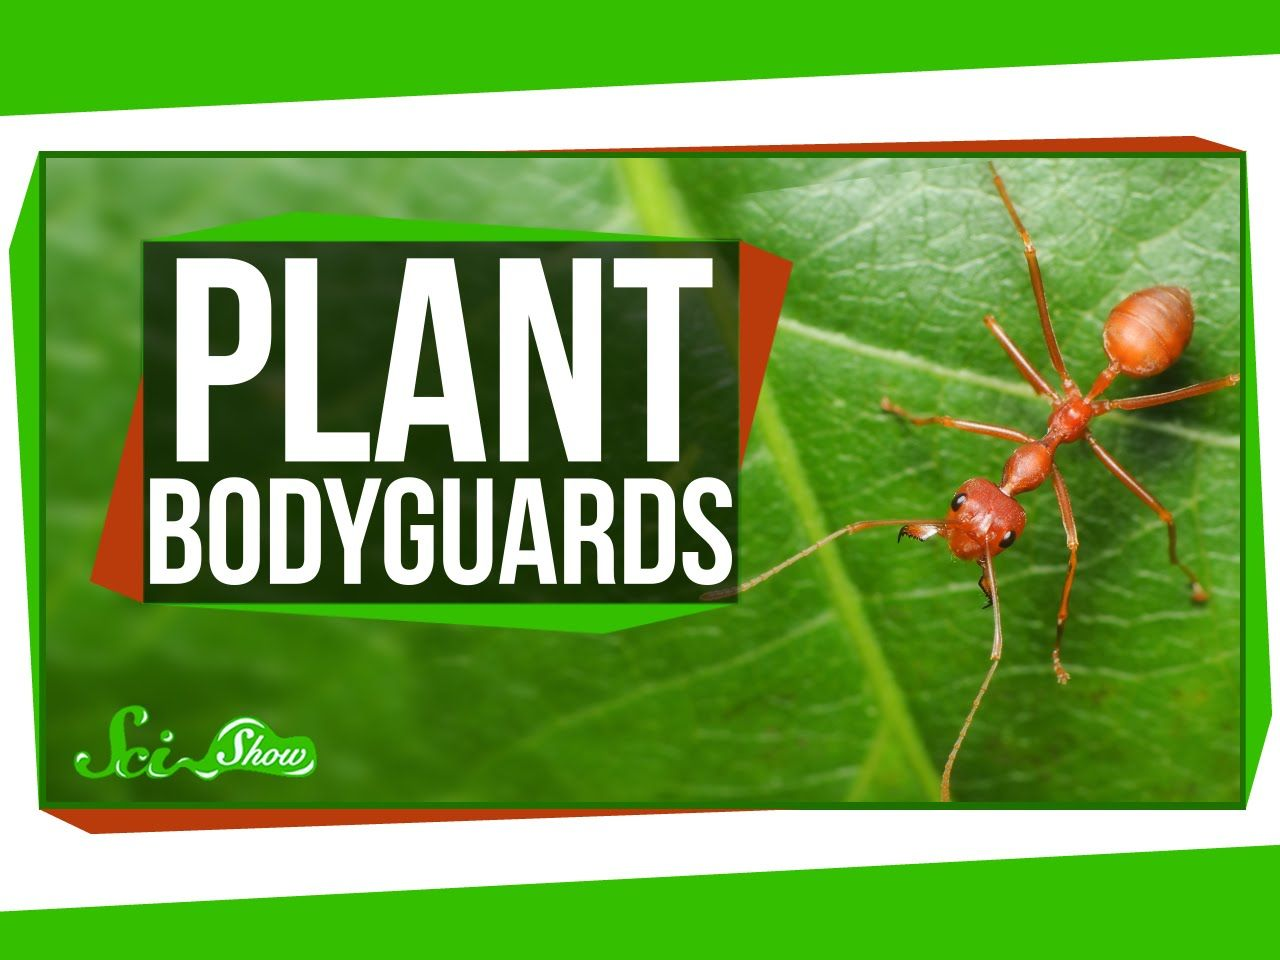 How Plants Attract Bodyguards